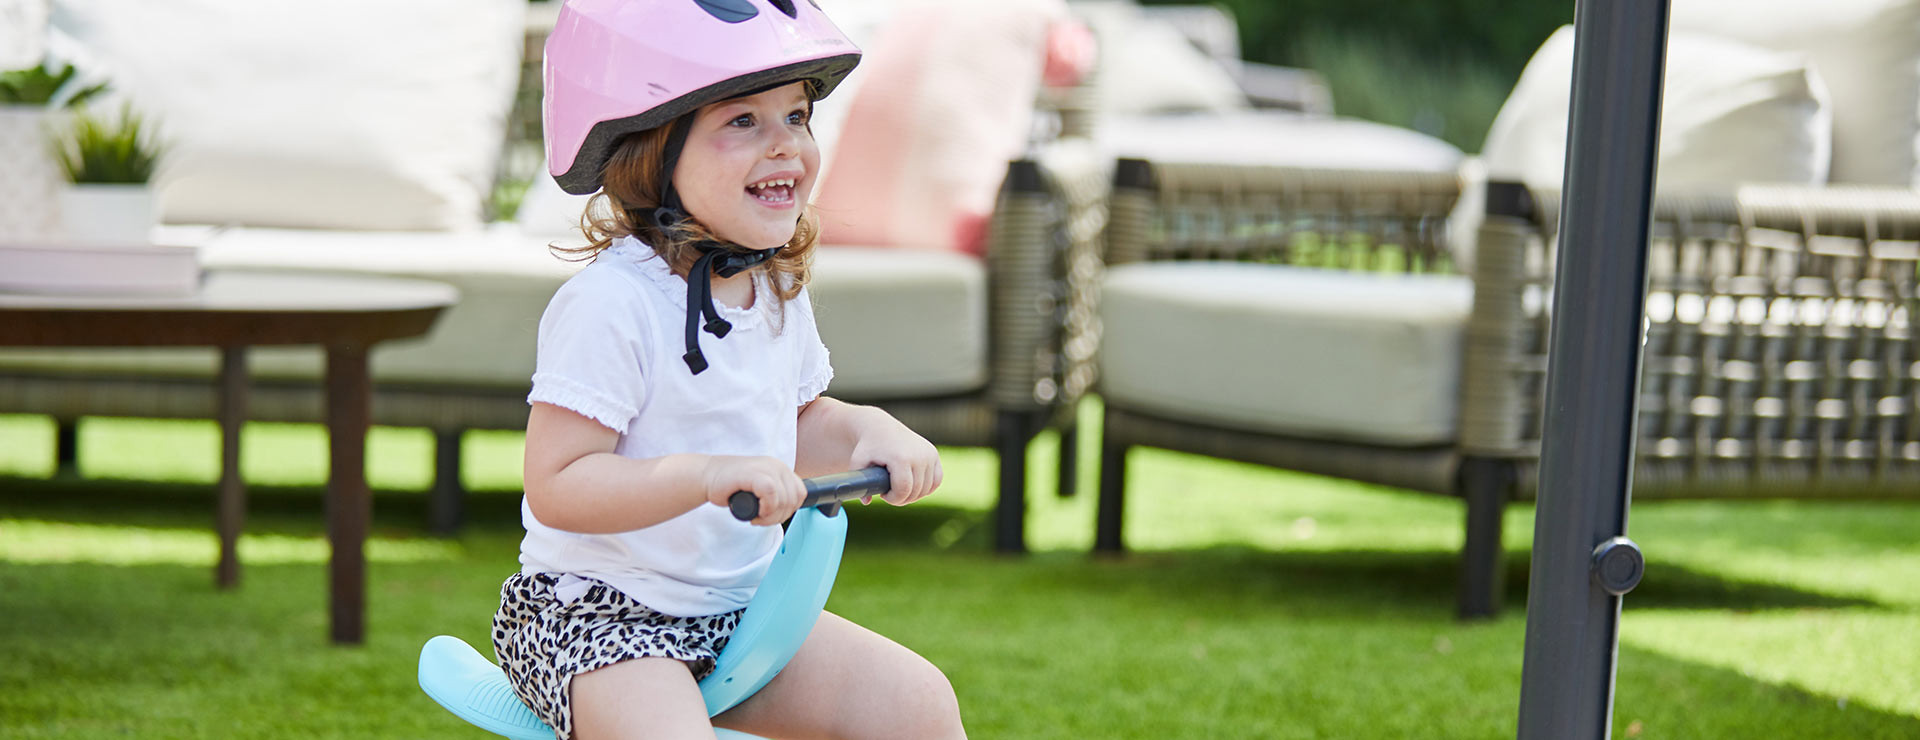 Ride-on mode enables your child to begin exploring their world through riding